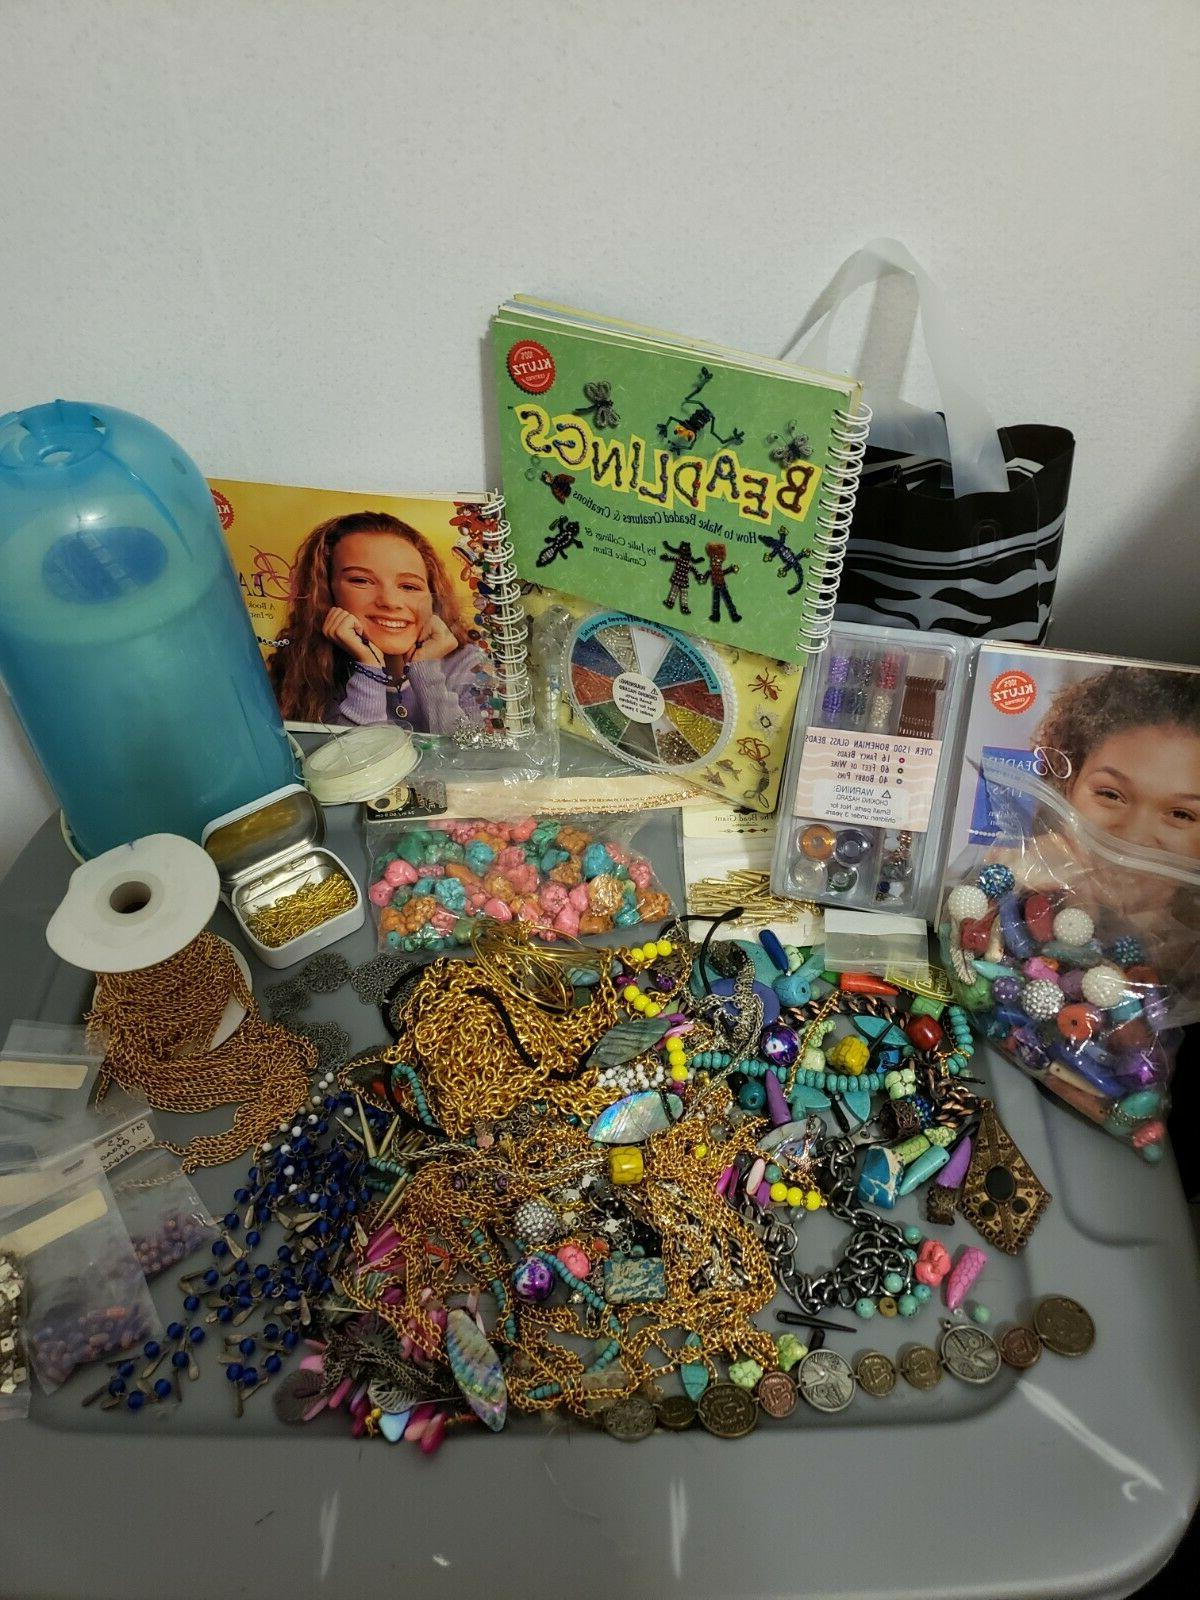 jewelry making bundle crystals stones beads charms